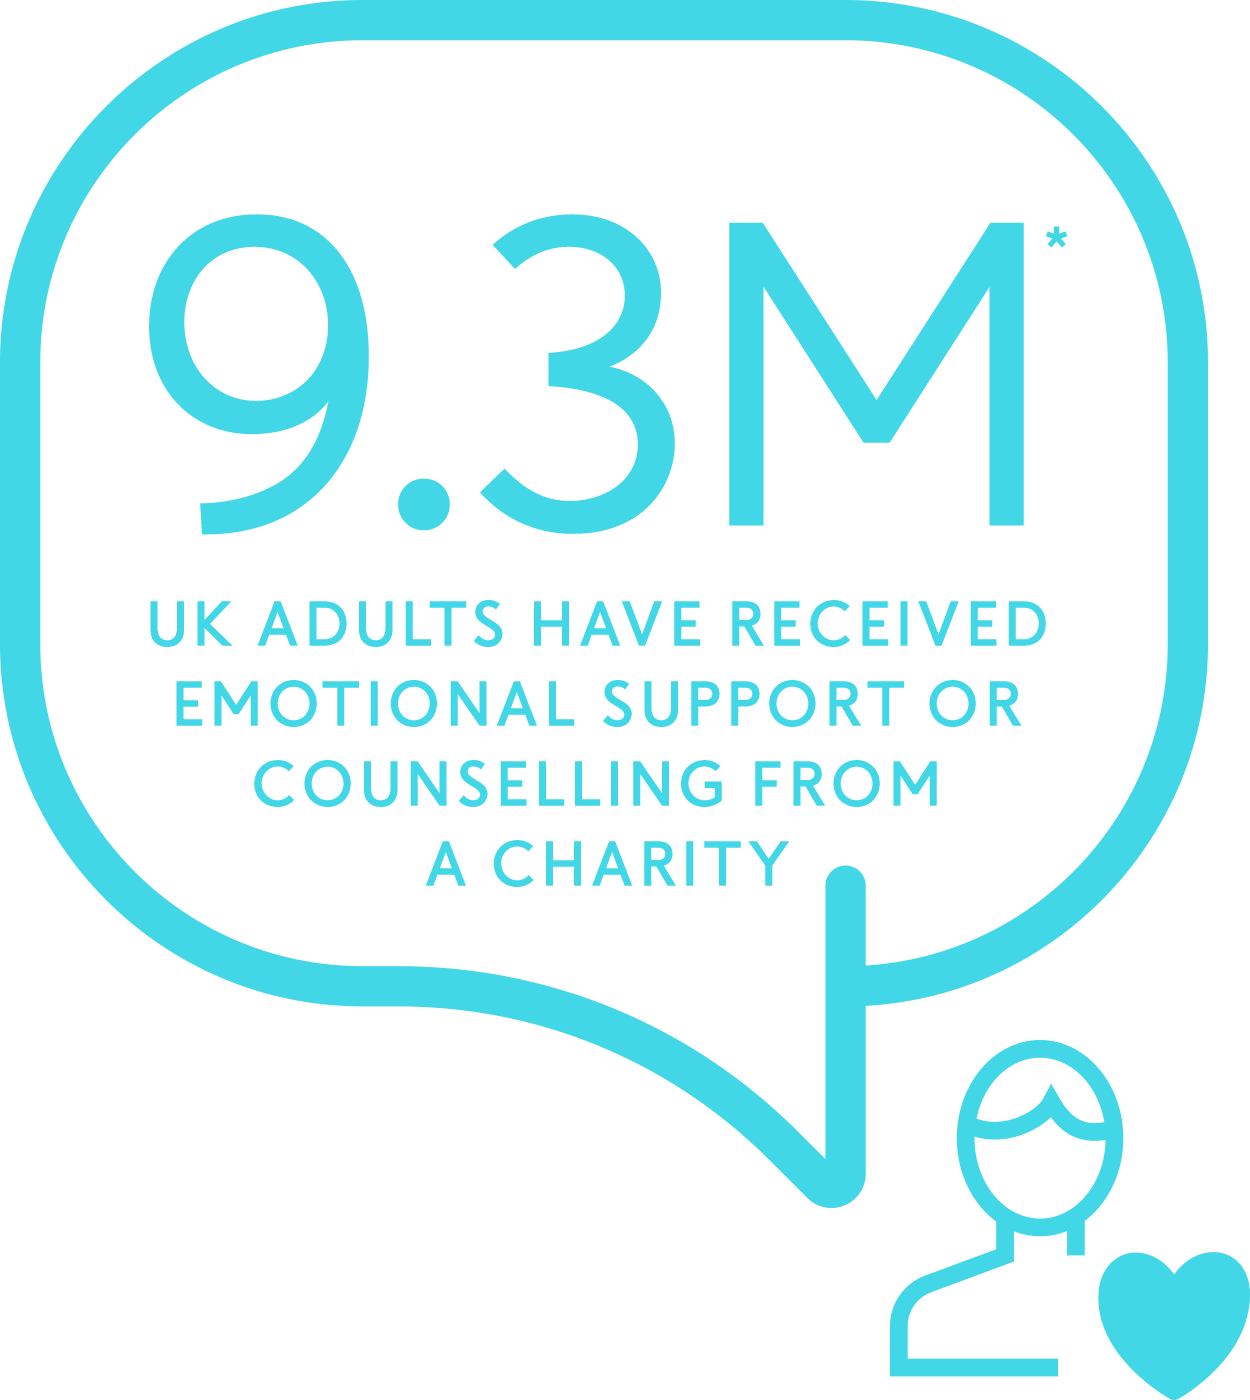 9.2M UK adults have received emotional support of couselling